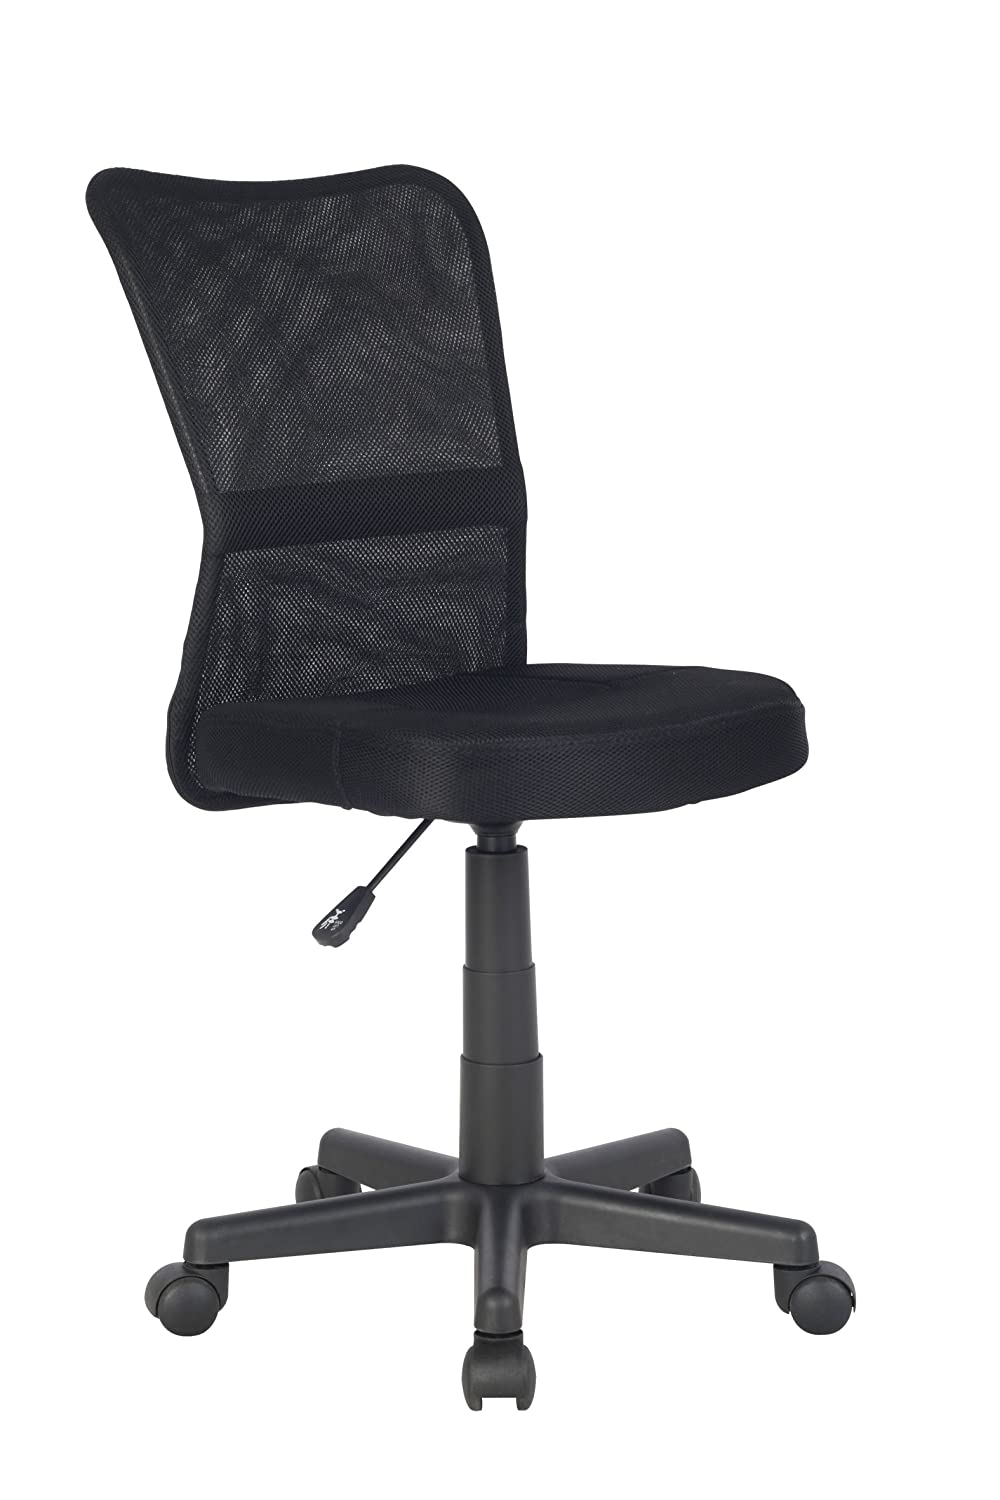 SixBros. Office Chair Black